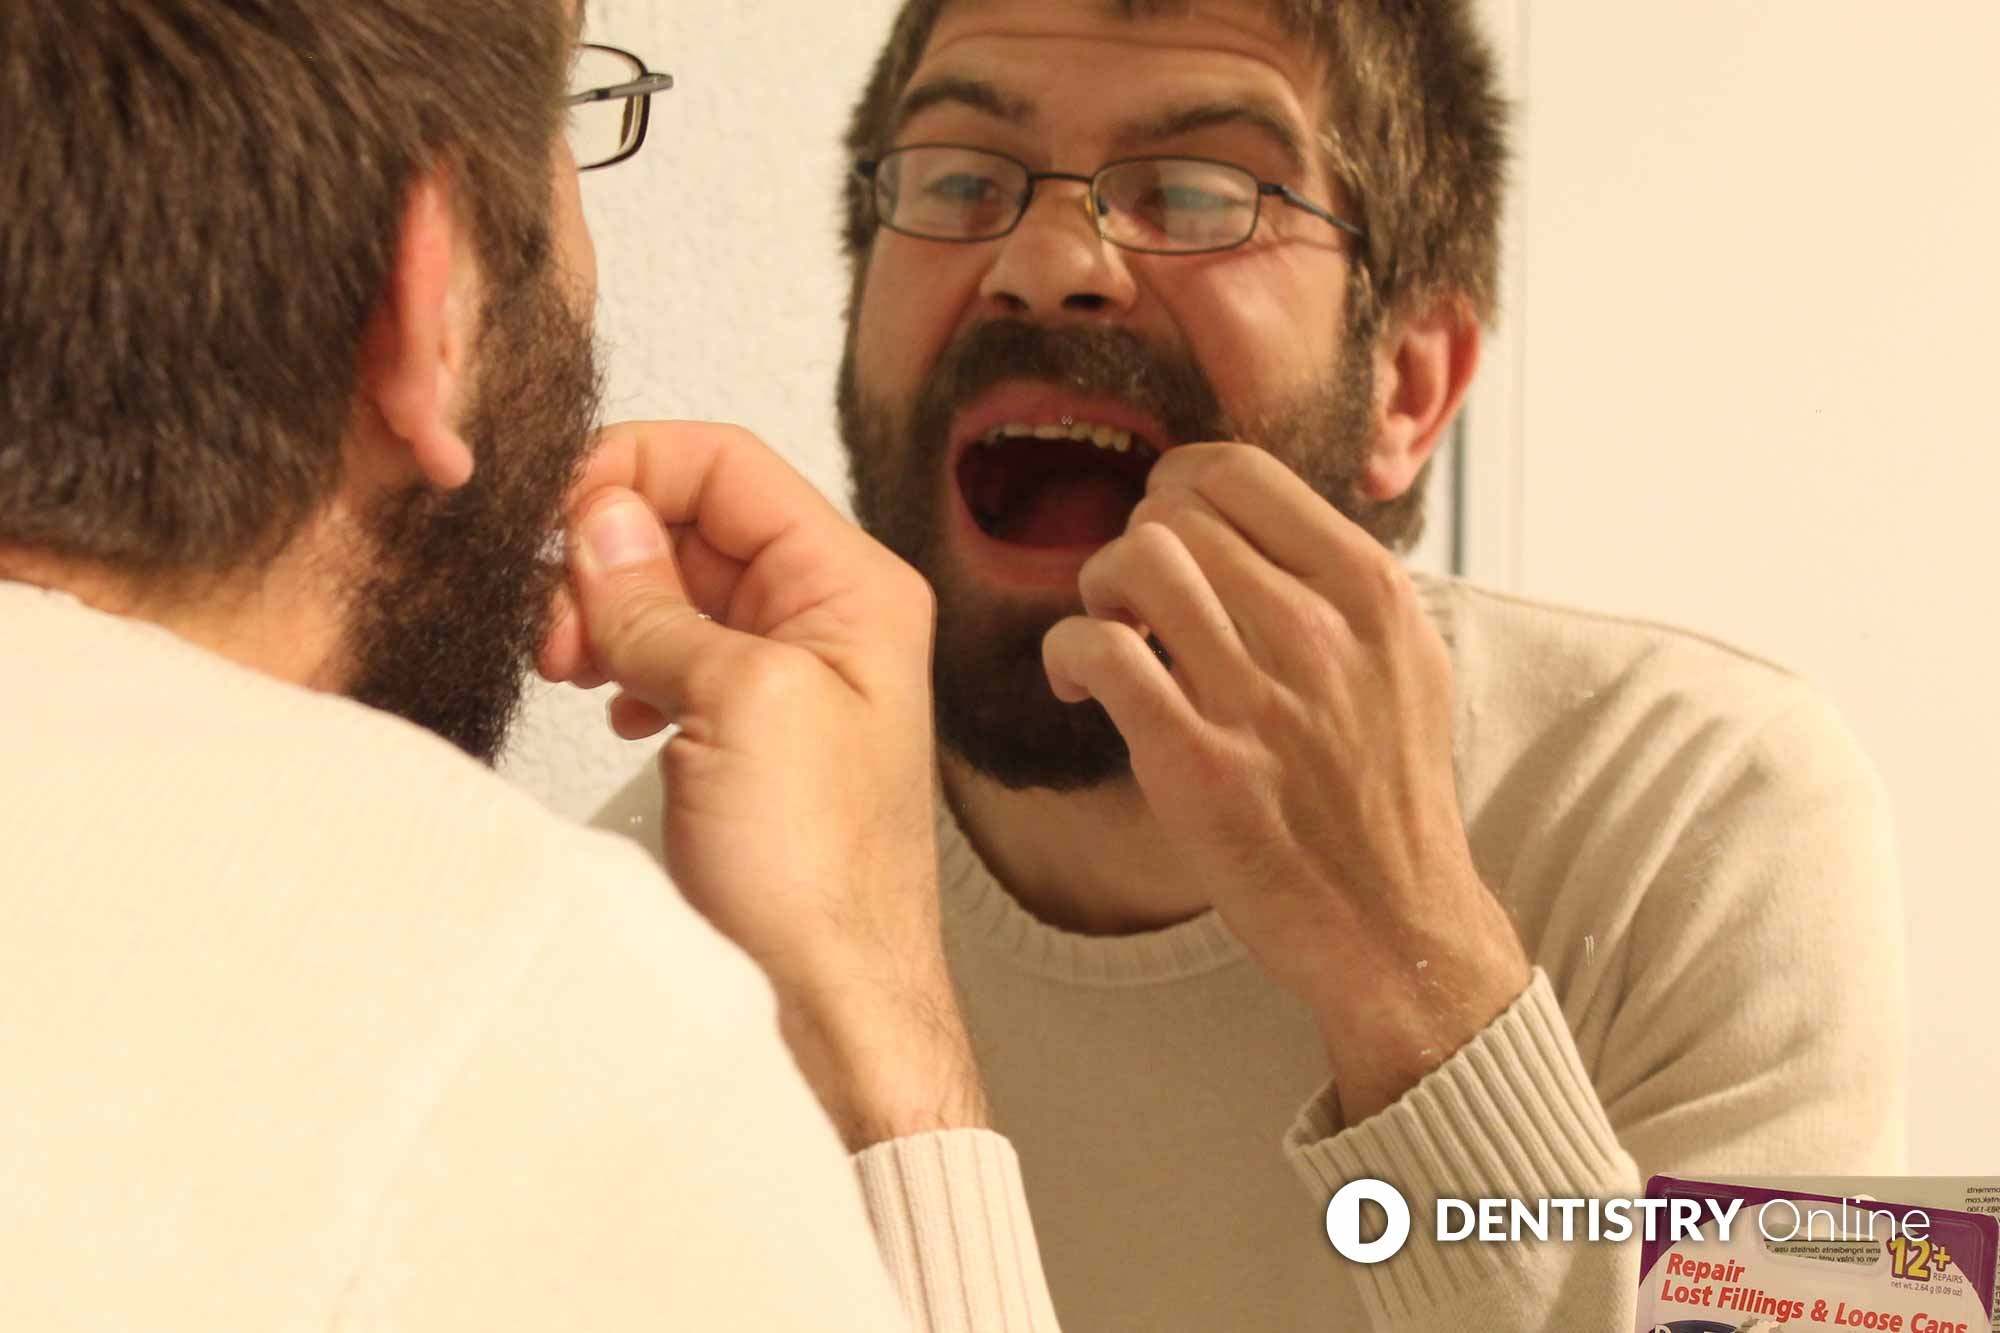 man carrying out diy dentistry